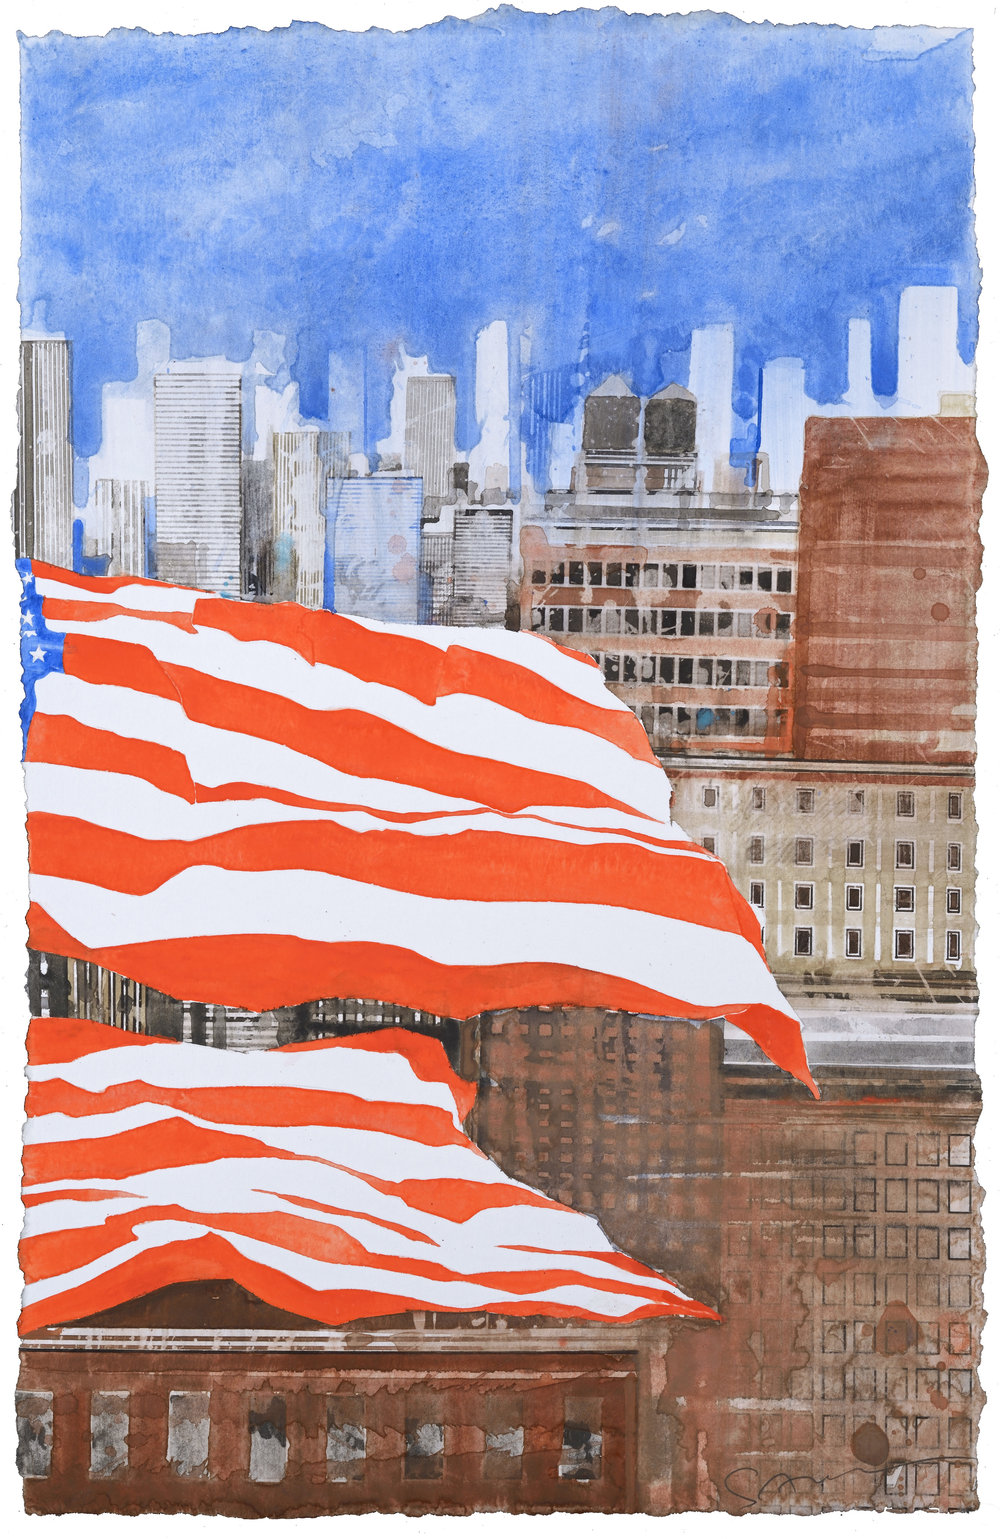 US Flag IX, watercolor, 48 x 30 cm, 19 x 12 in, 2016